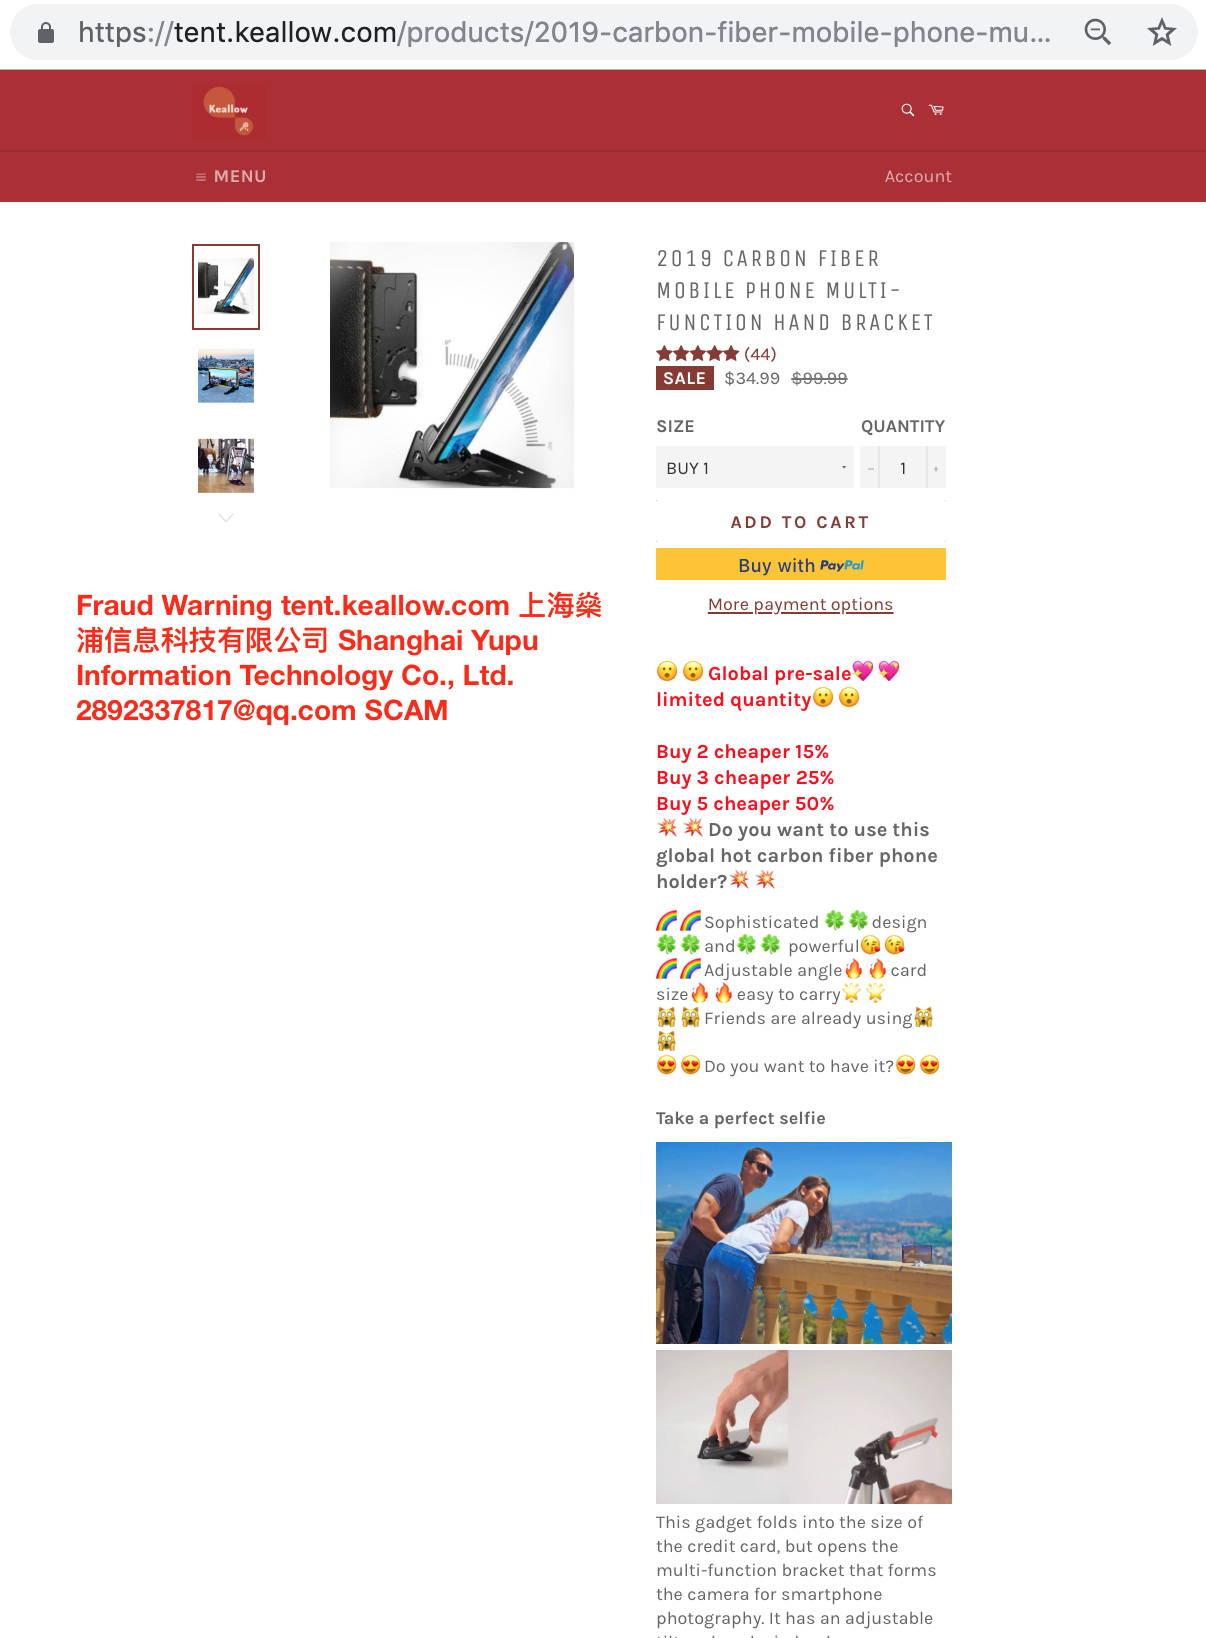 Fraud Warning tent.keallow.com 上海燊浦信息科技有限公司 Shanghai Yupu Information Technology Co., Ltd. 2892337817@qq.com SCAM